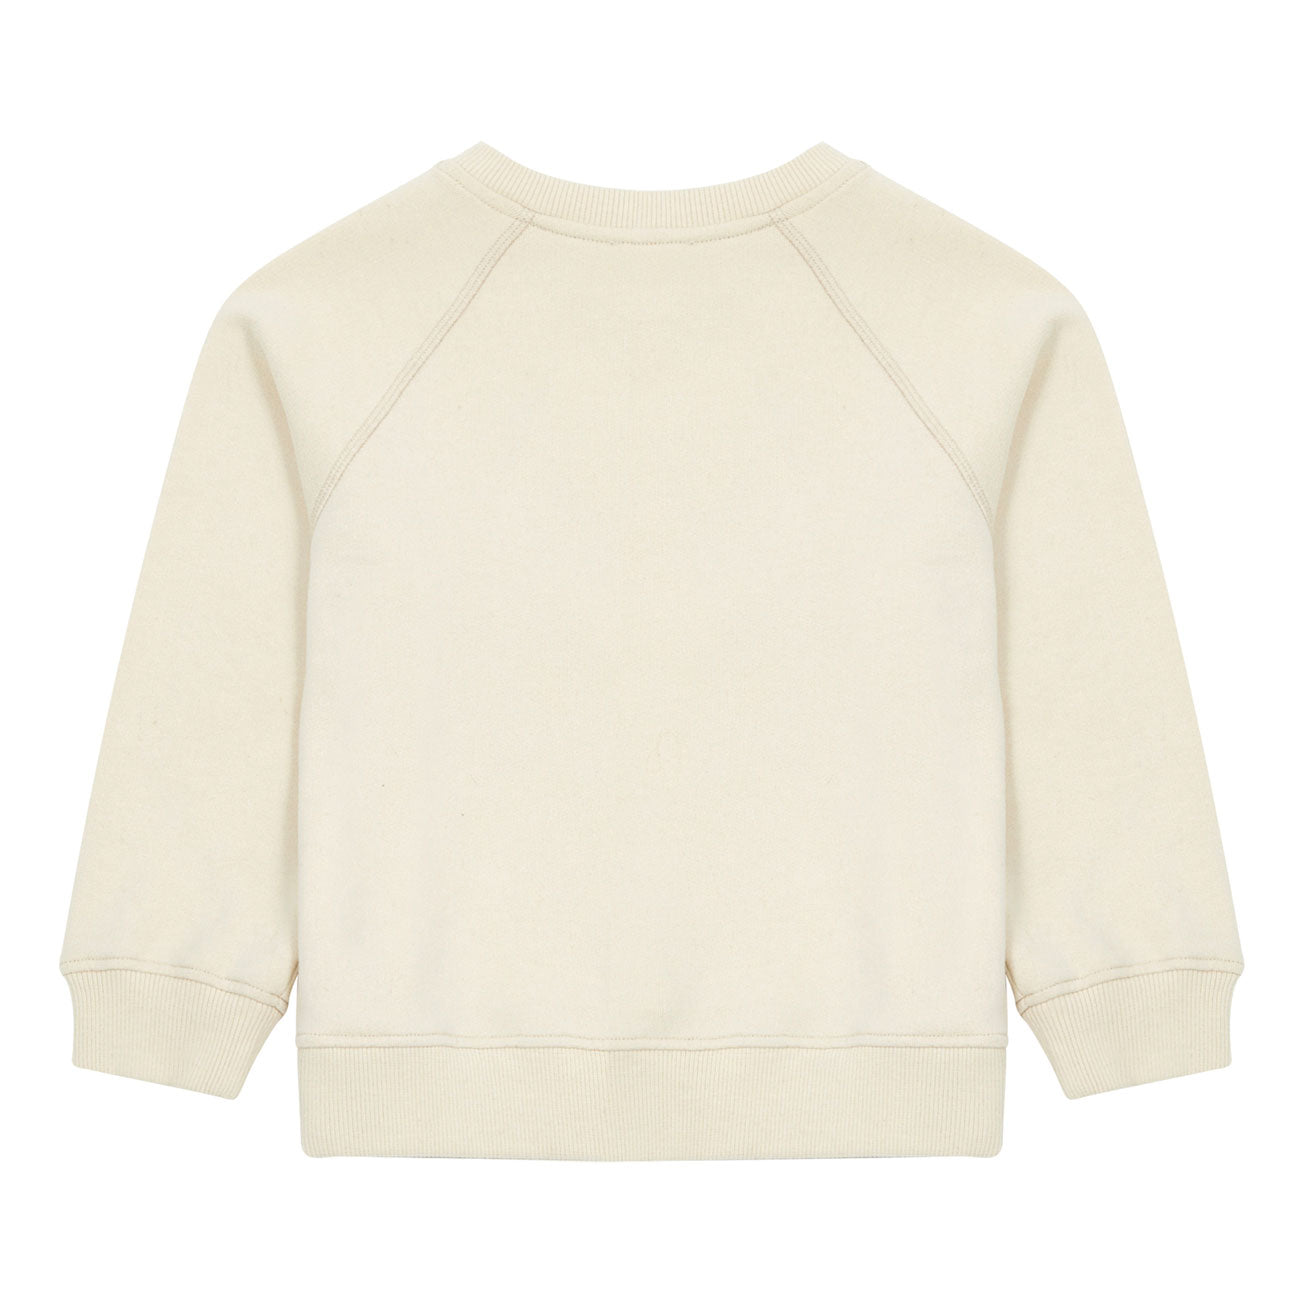 Hundred Pieces Mastic Fresh and Crispy Sweatshirt